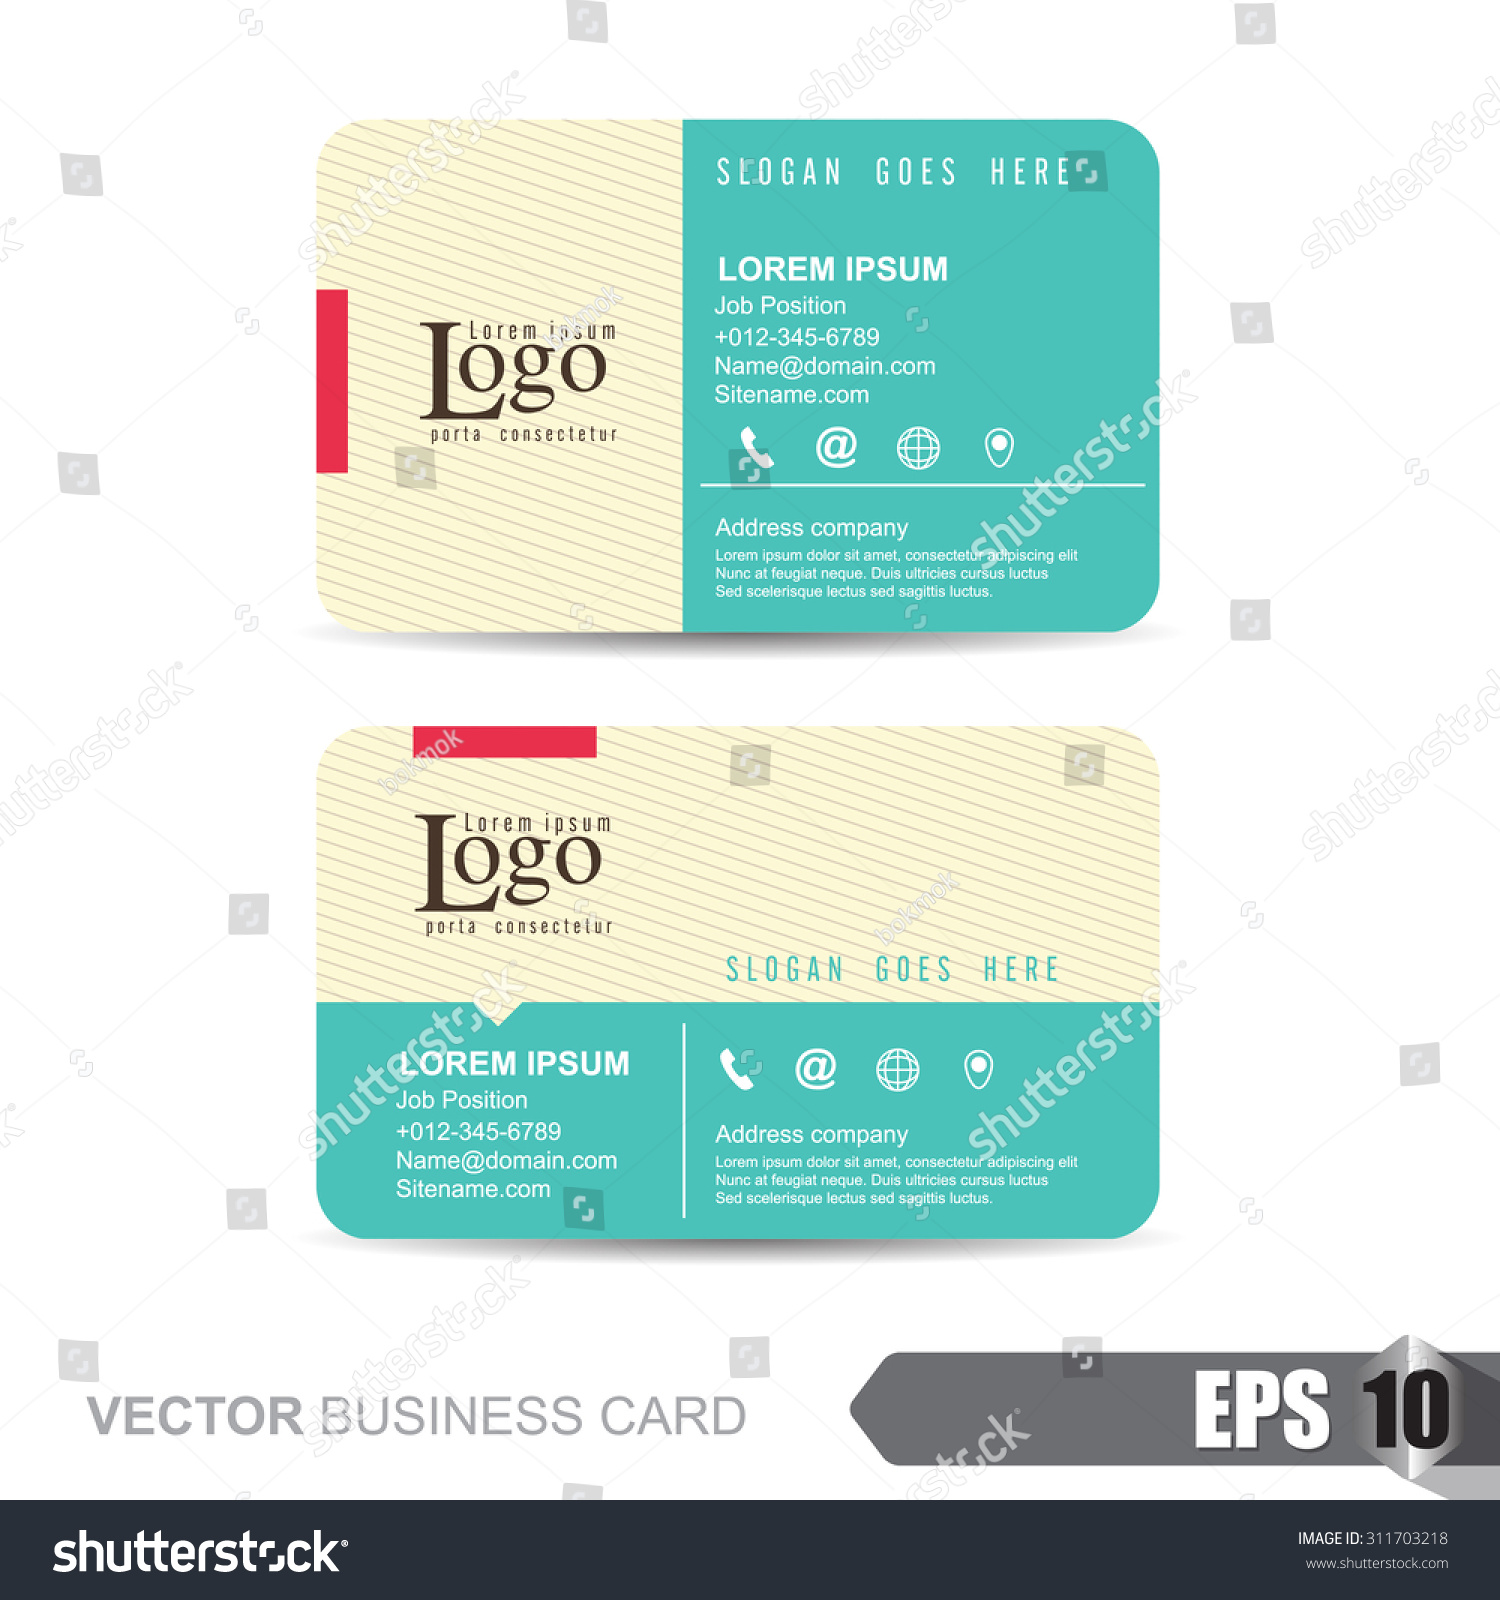 Wonderful 1 Page Resumes Tiny 10 Envelope Template Indesign Round 100 Day Plan Template 10x13 Envelope Template Young 16x20 Collage Template Coloured18th Birthday Invitation Templates Vector Illustrationbusiness Card Template Clean Modern Stock ..